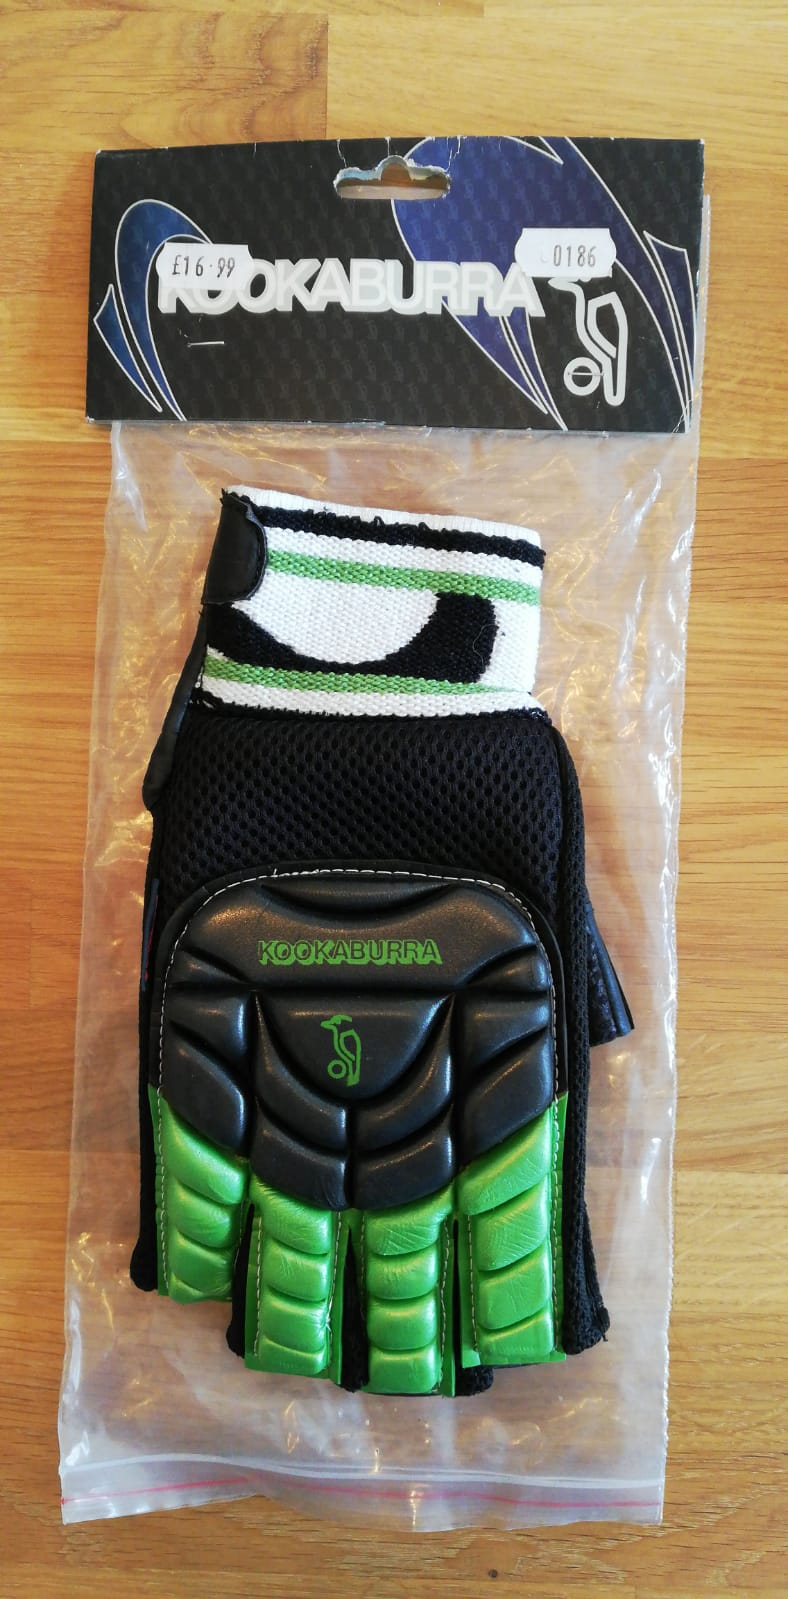 Kookaburra Right-Hand Protection Glove Green/Black